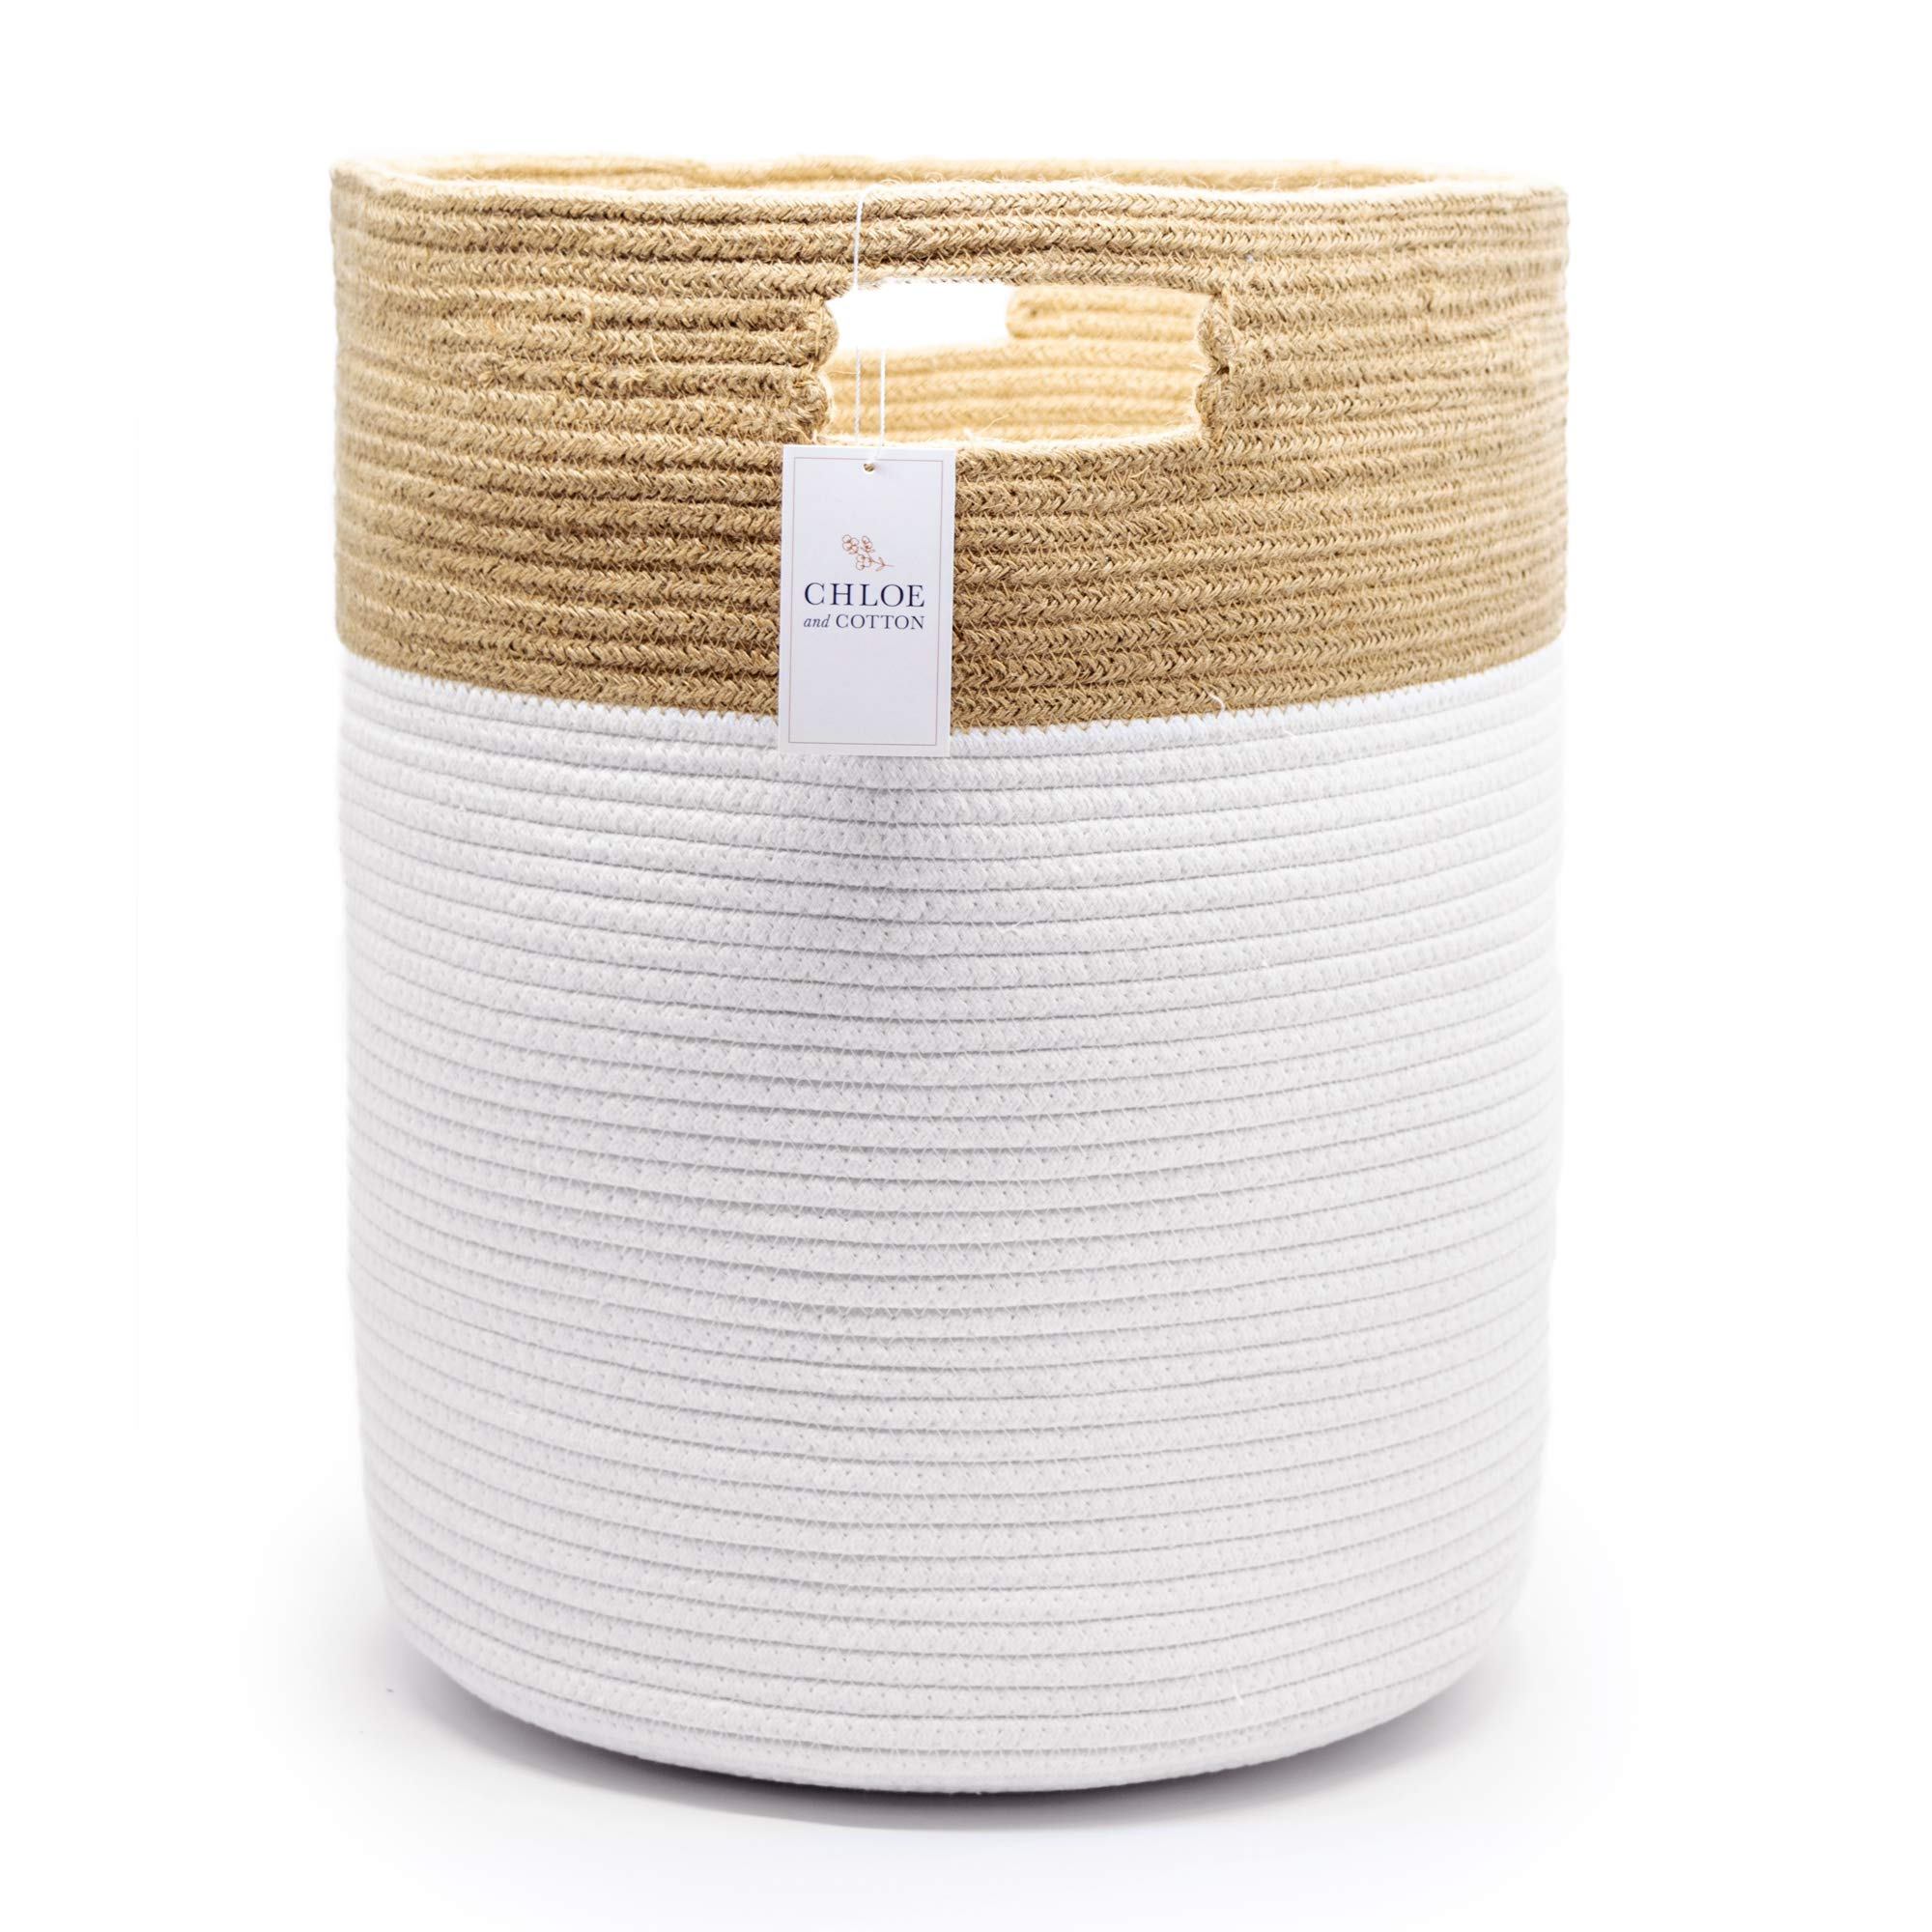 Chloe and Cotton Extra Large Tall Woven Rope Storage Basket 19 x 16 inch Jute White Handles | Decorative Laundry Clothes Hamper, Blanket, Towel, Baby Nursery Diaper, Toy Bin Cute Collapsible Organizer by Chloe and Cotton